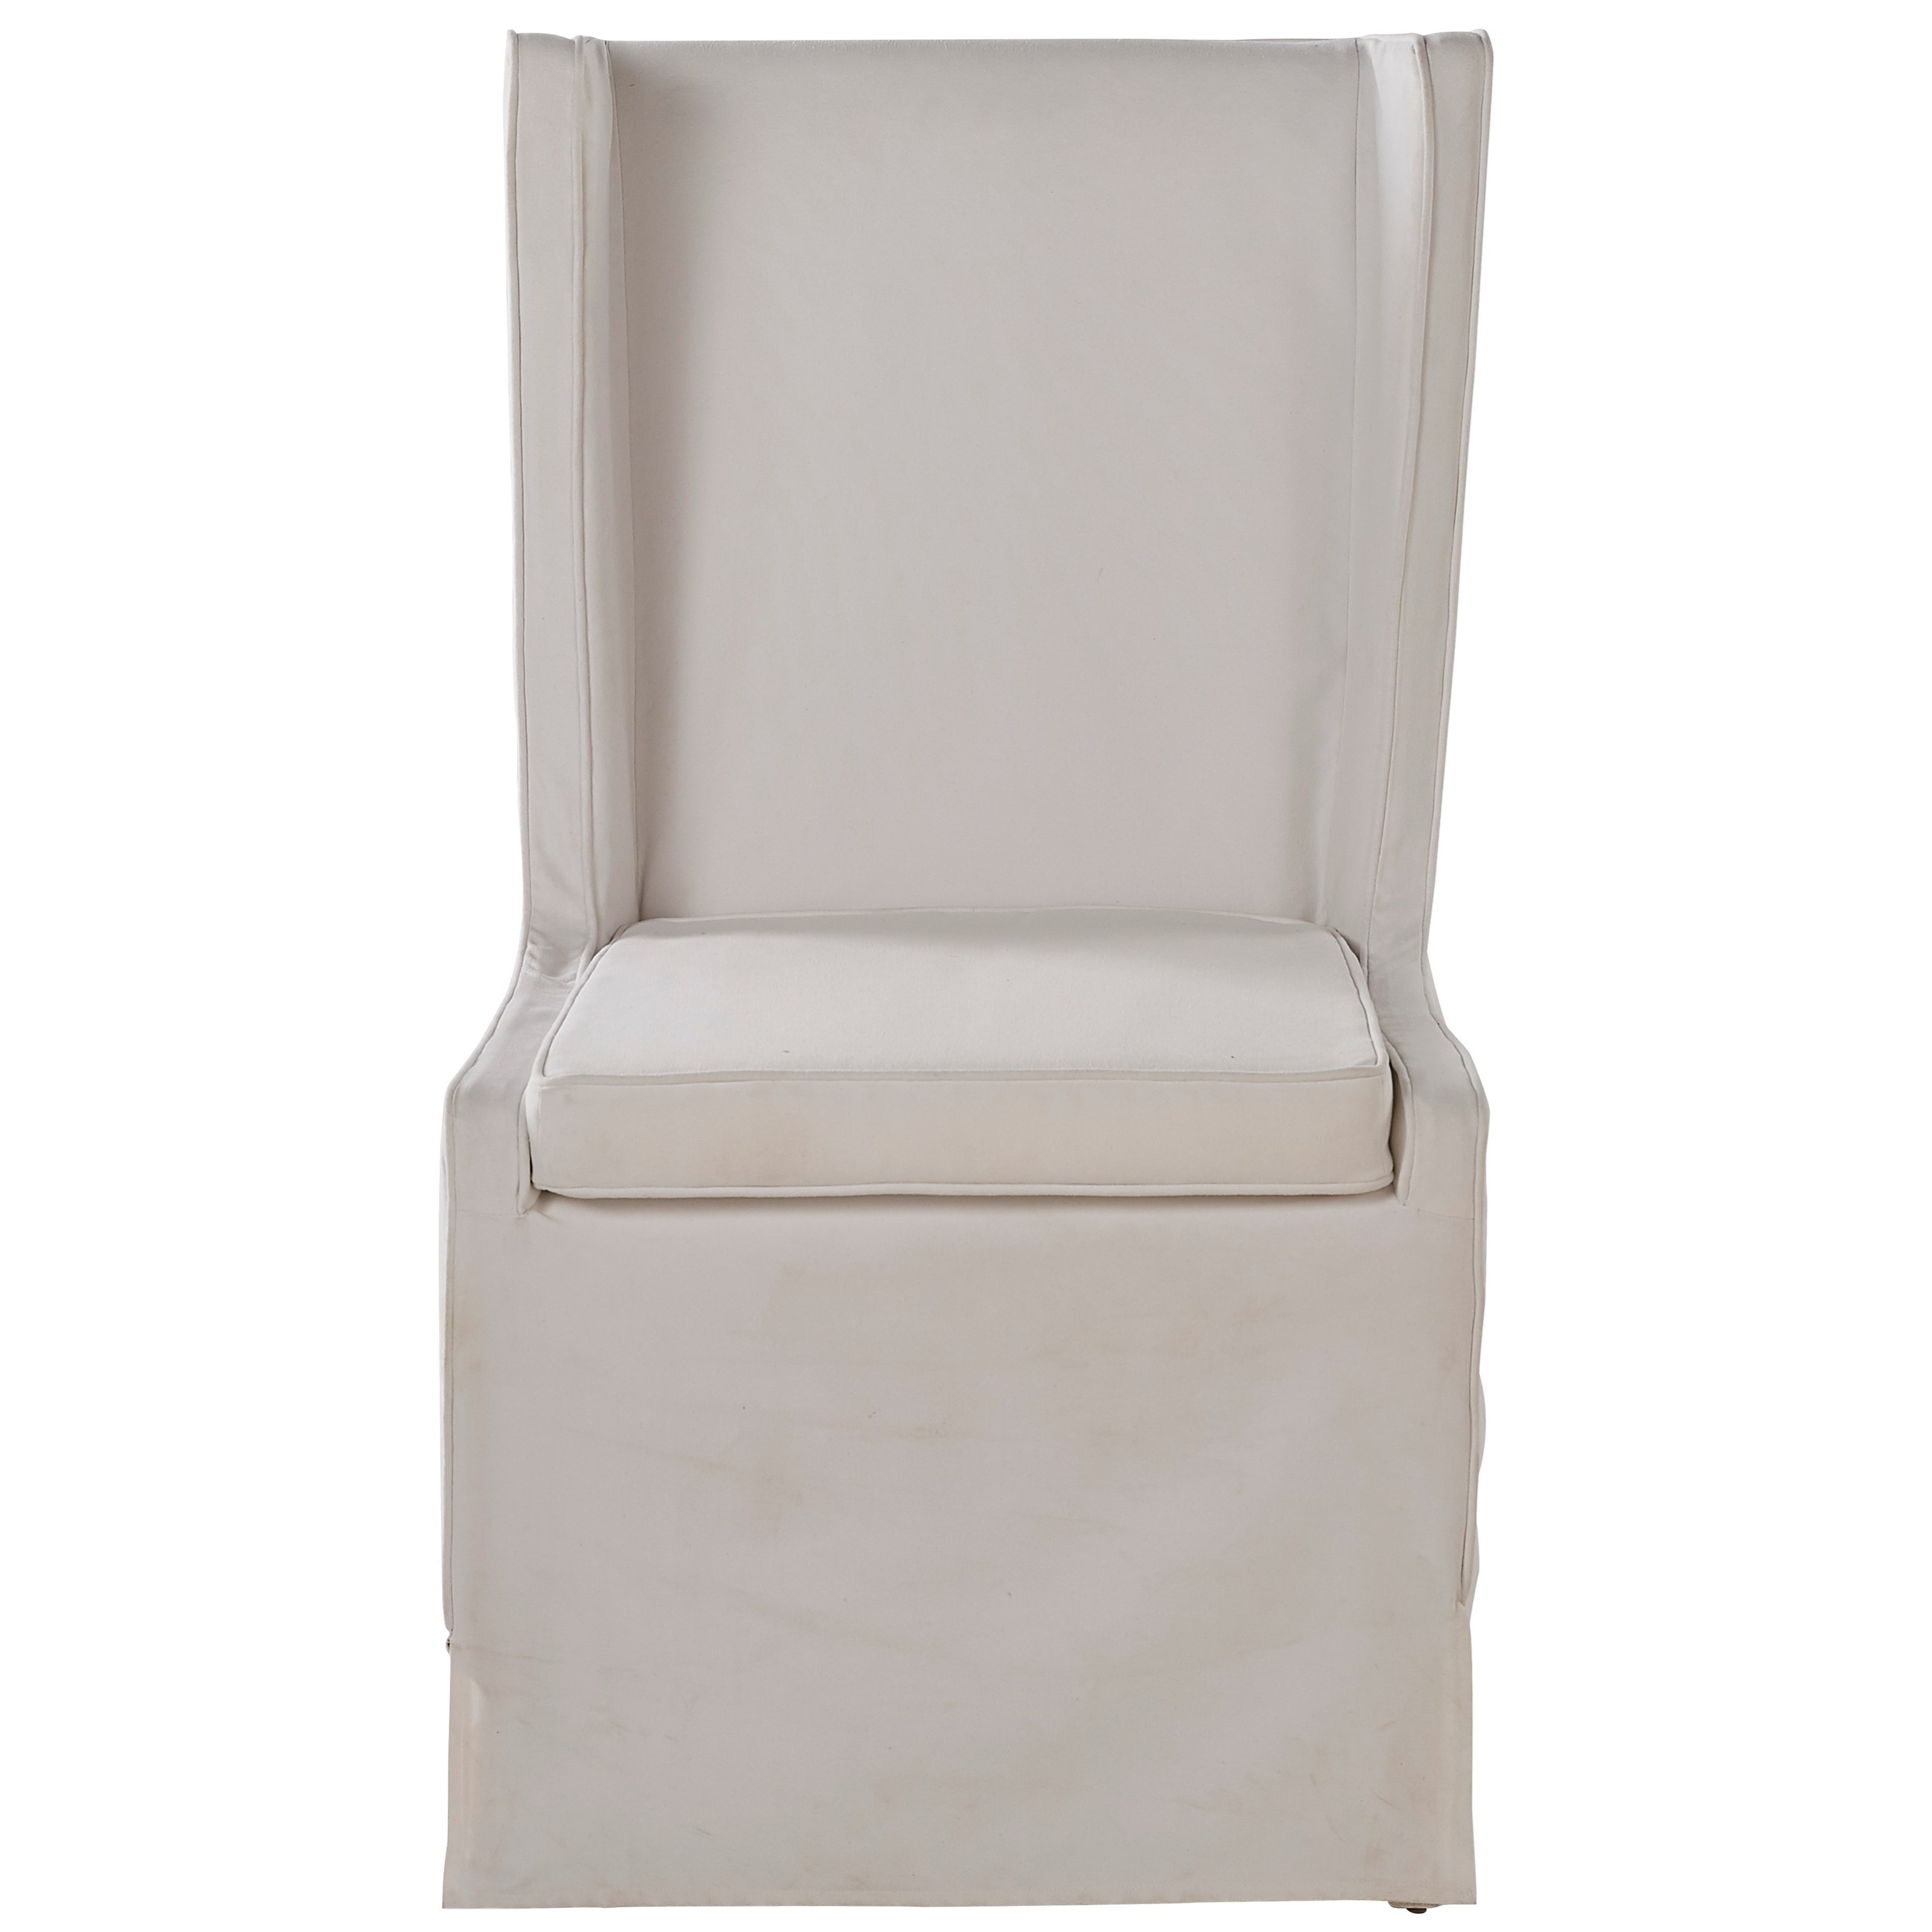 Coastal Living Home - Getaway Slip Cover Chair by Universal at Baer's Furniture